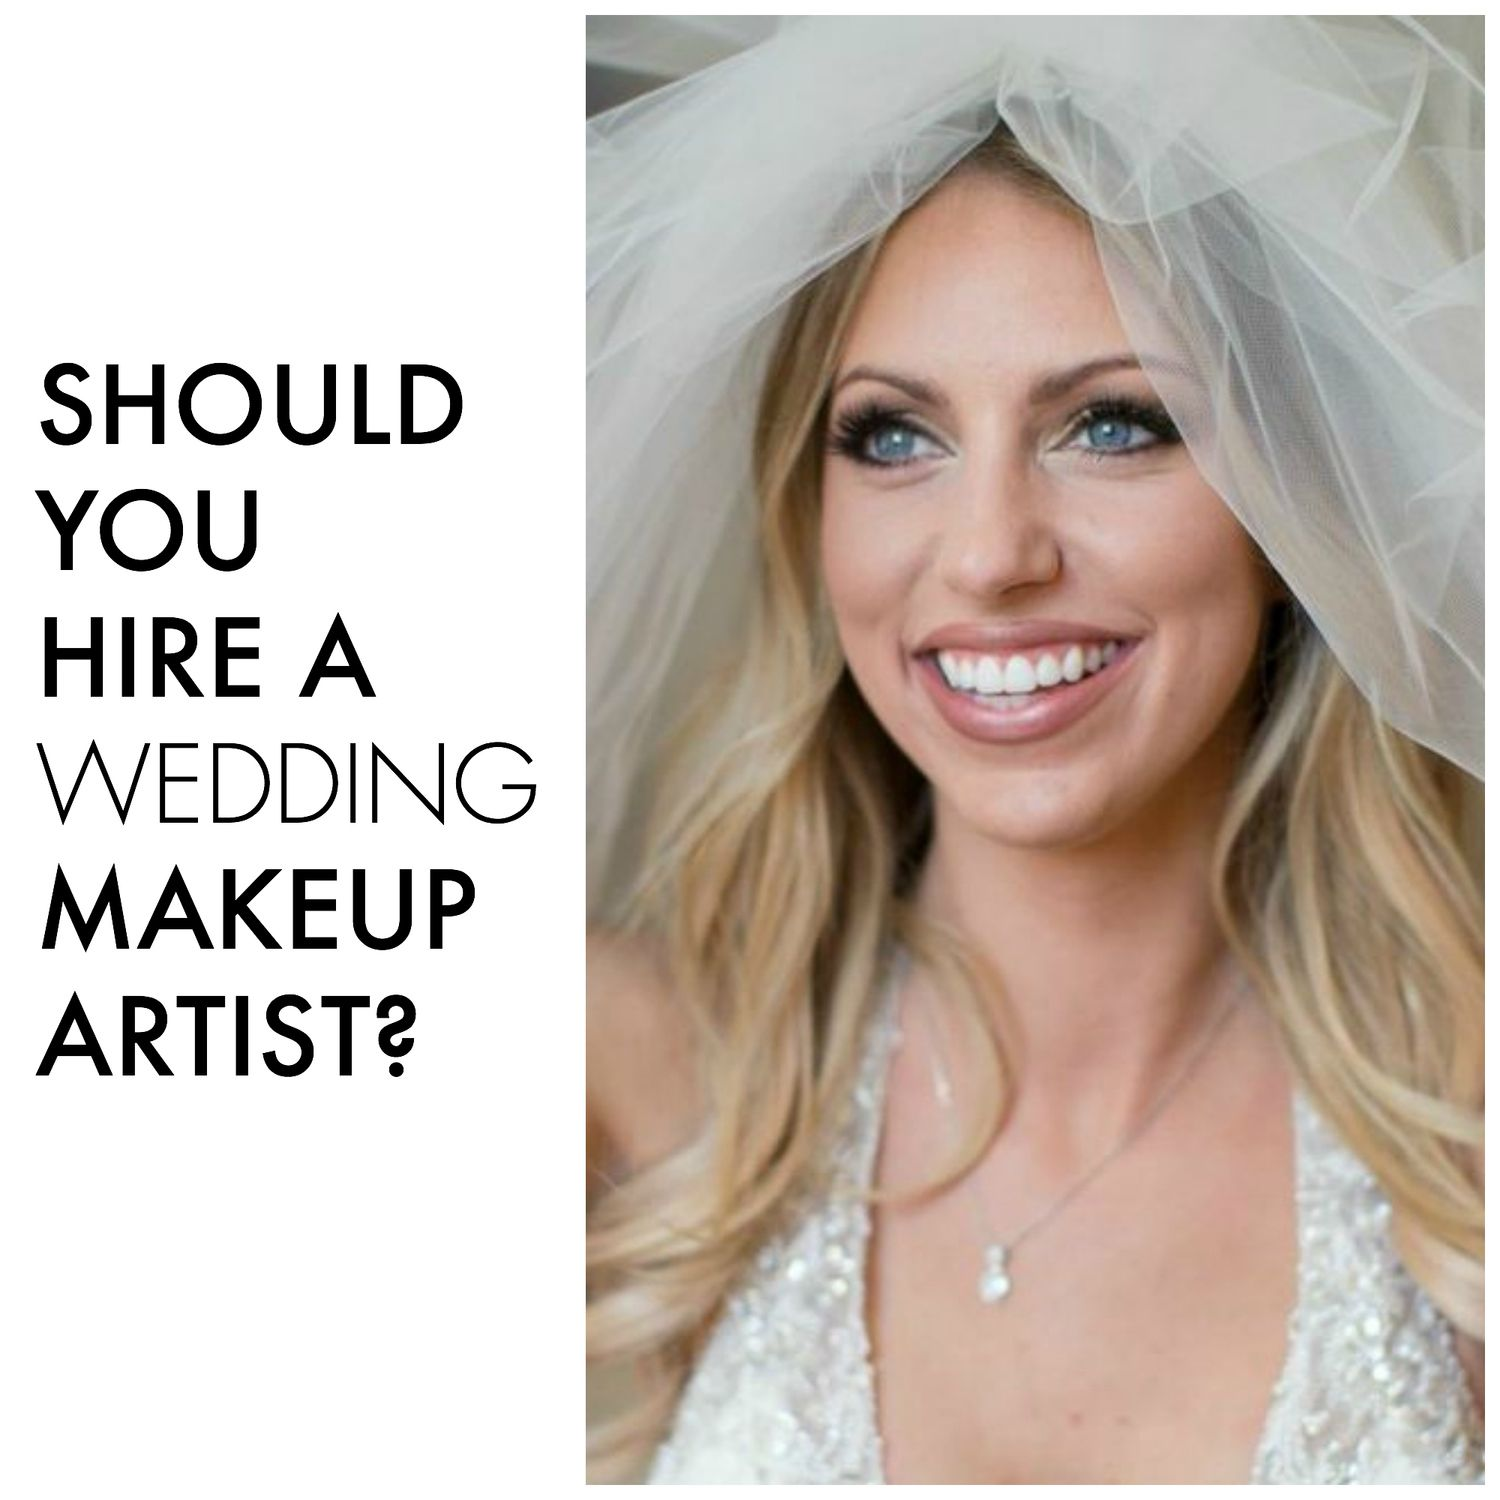 Should you hire a wedding makeup artist wedding wedding day should you hire a makeup artist for your wedding day or do it yourself solutioingenieria Image collections